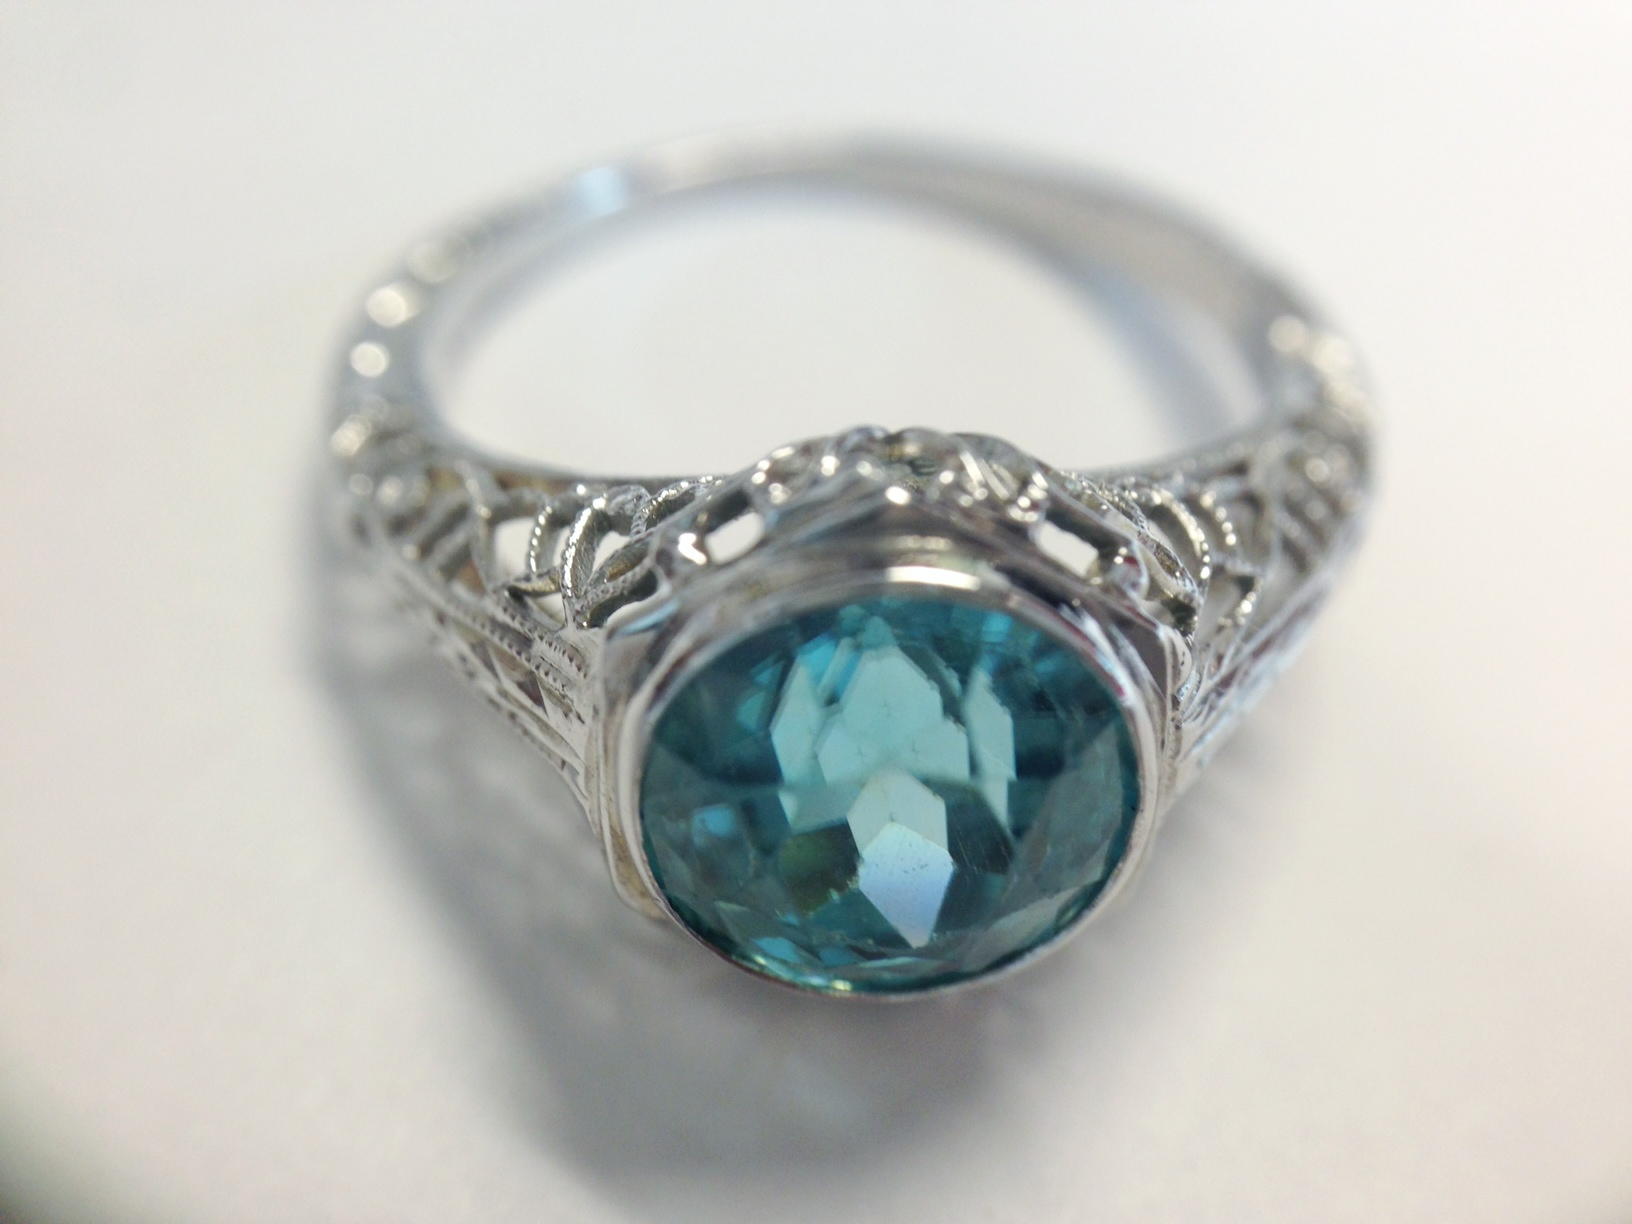 Vintage Platinum Ring with Blue stone